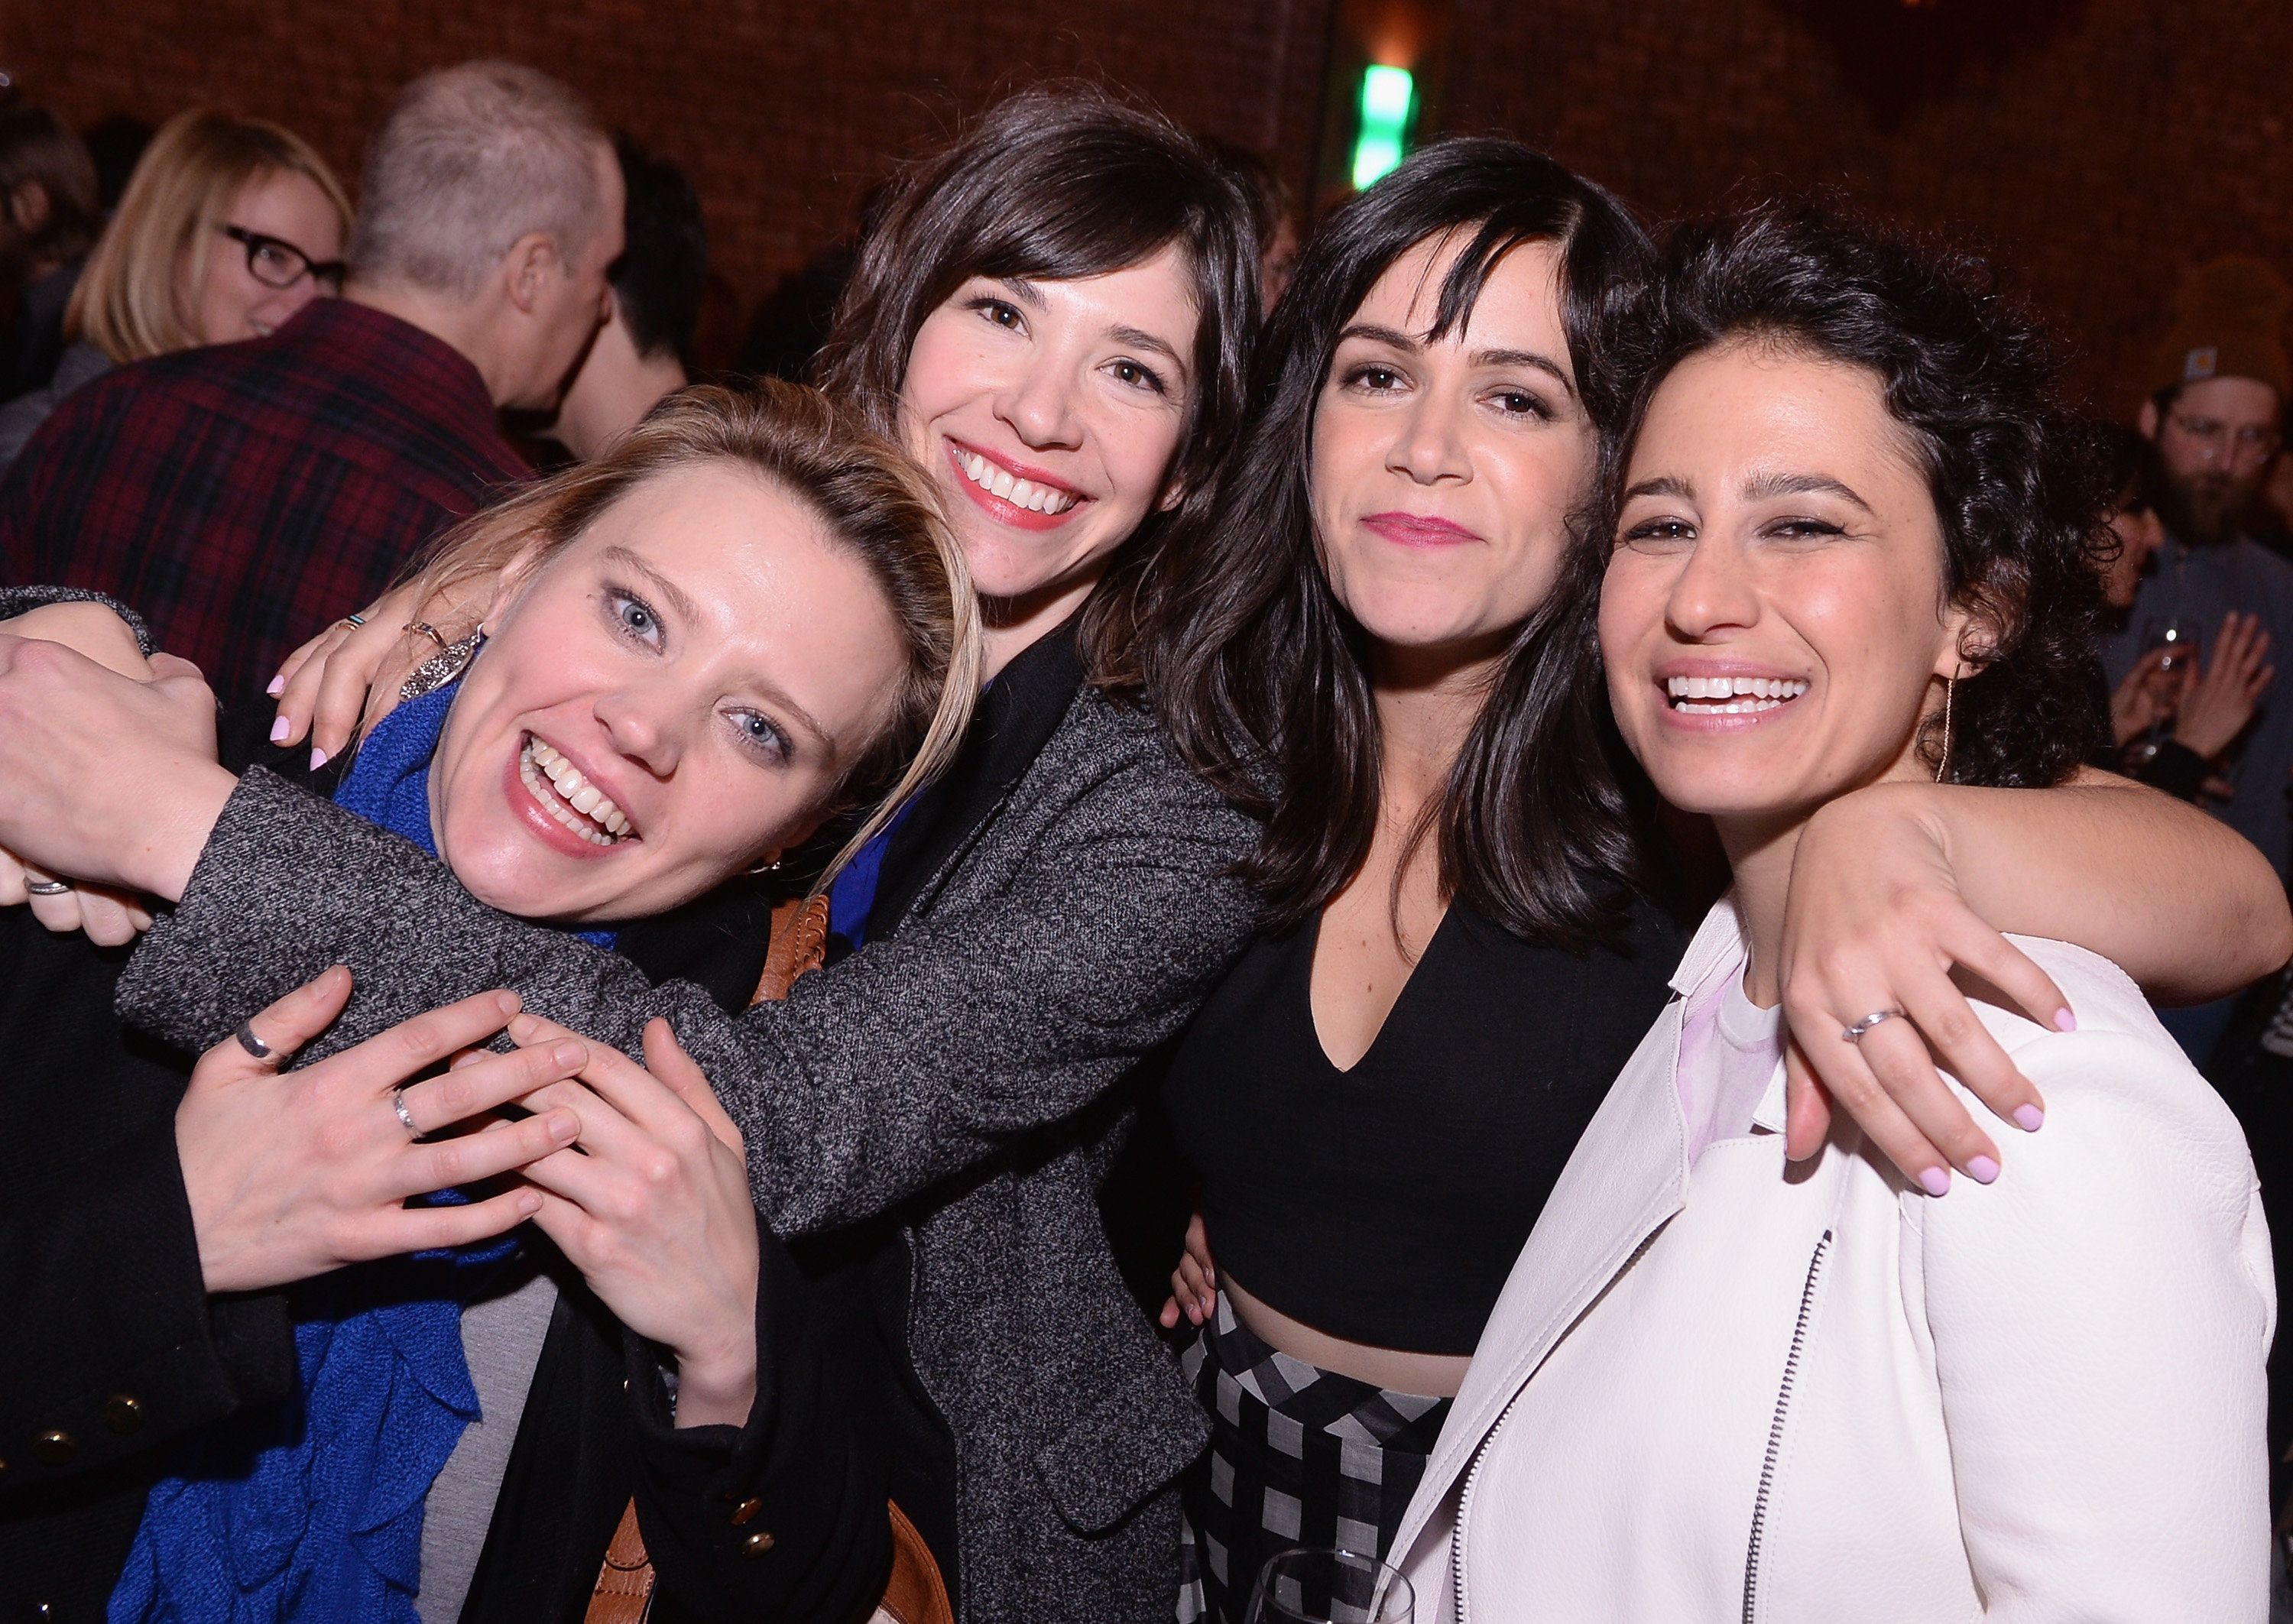 NEW YORK, NY - JANUARY 07:  (L-R)  Actress Kate McKinnon, actresss/musician Carrie Brownstein, actress/writer Abbi Jacobson, and actress/writer Ilana Glazer attend The Broad City Season 2 Premiere Party at 26 Bridge Street on January 7, 2015 in New York City.  (Photo by Stephen Lovekin/Getty Images for Comedy Central)